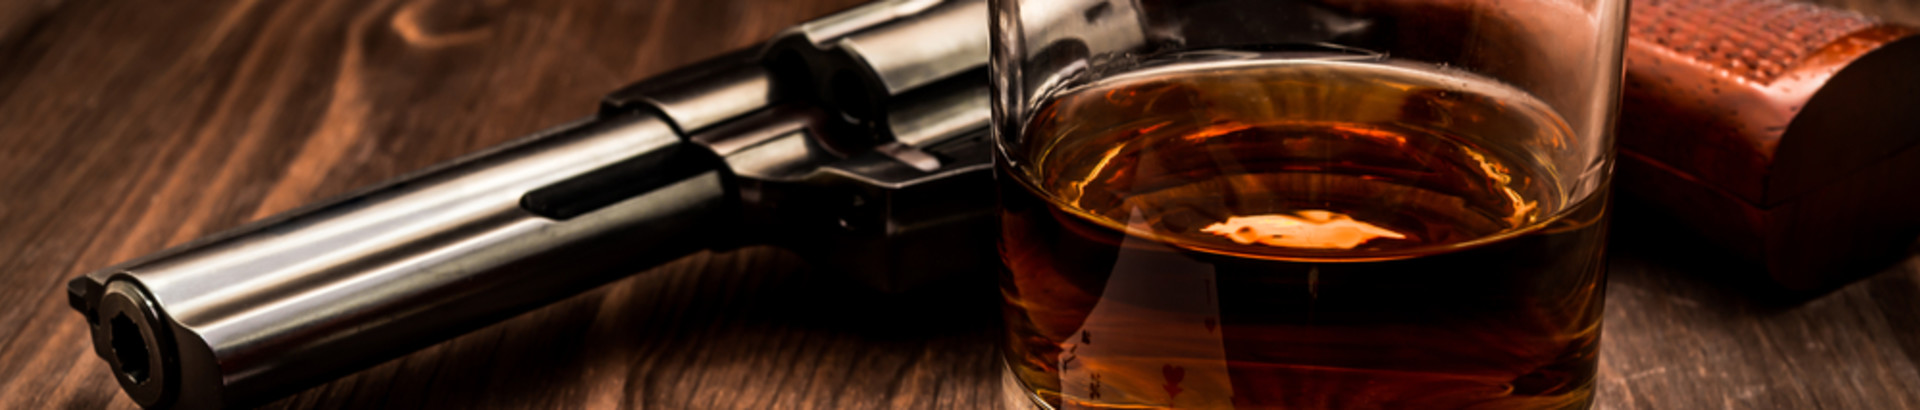 Whisky and Gun on table